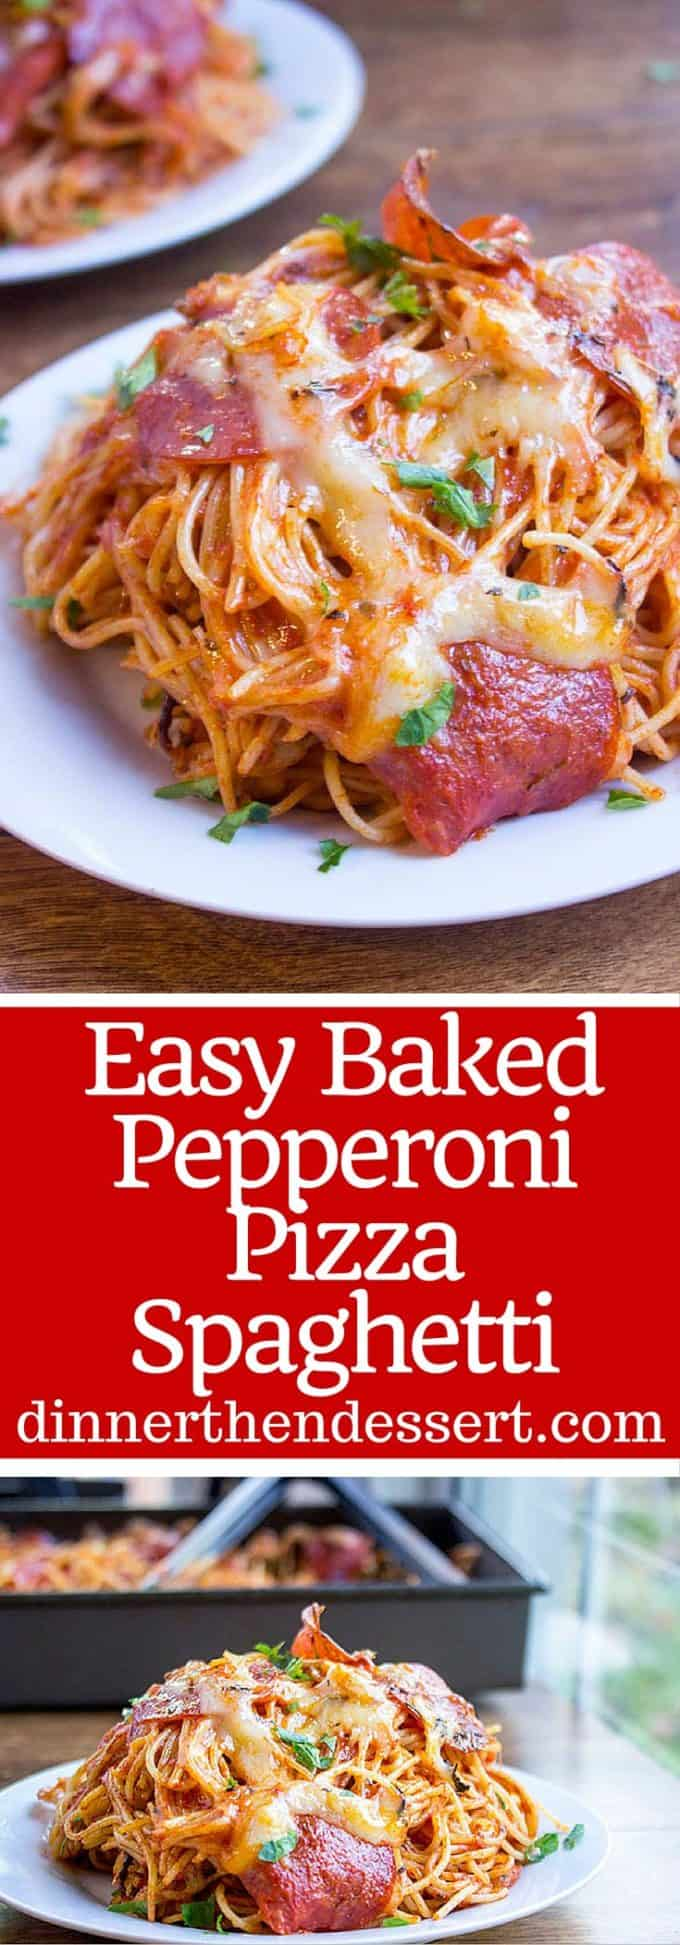 A mix of pepperoni pizza and cheesy marinara pasta, this Easy Baked Pepperoni Pizza Spaghetti is a fun alternative to pizza night and perfect for a crowd! dinnerthendessert.com